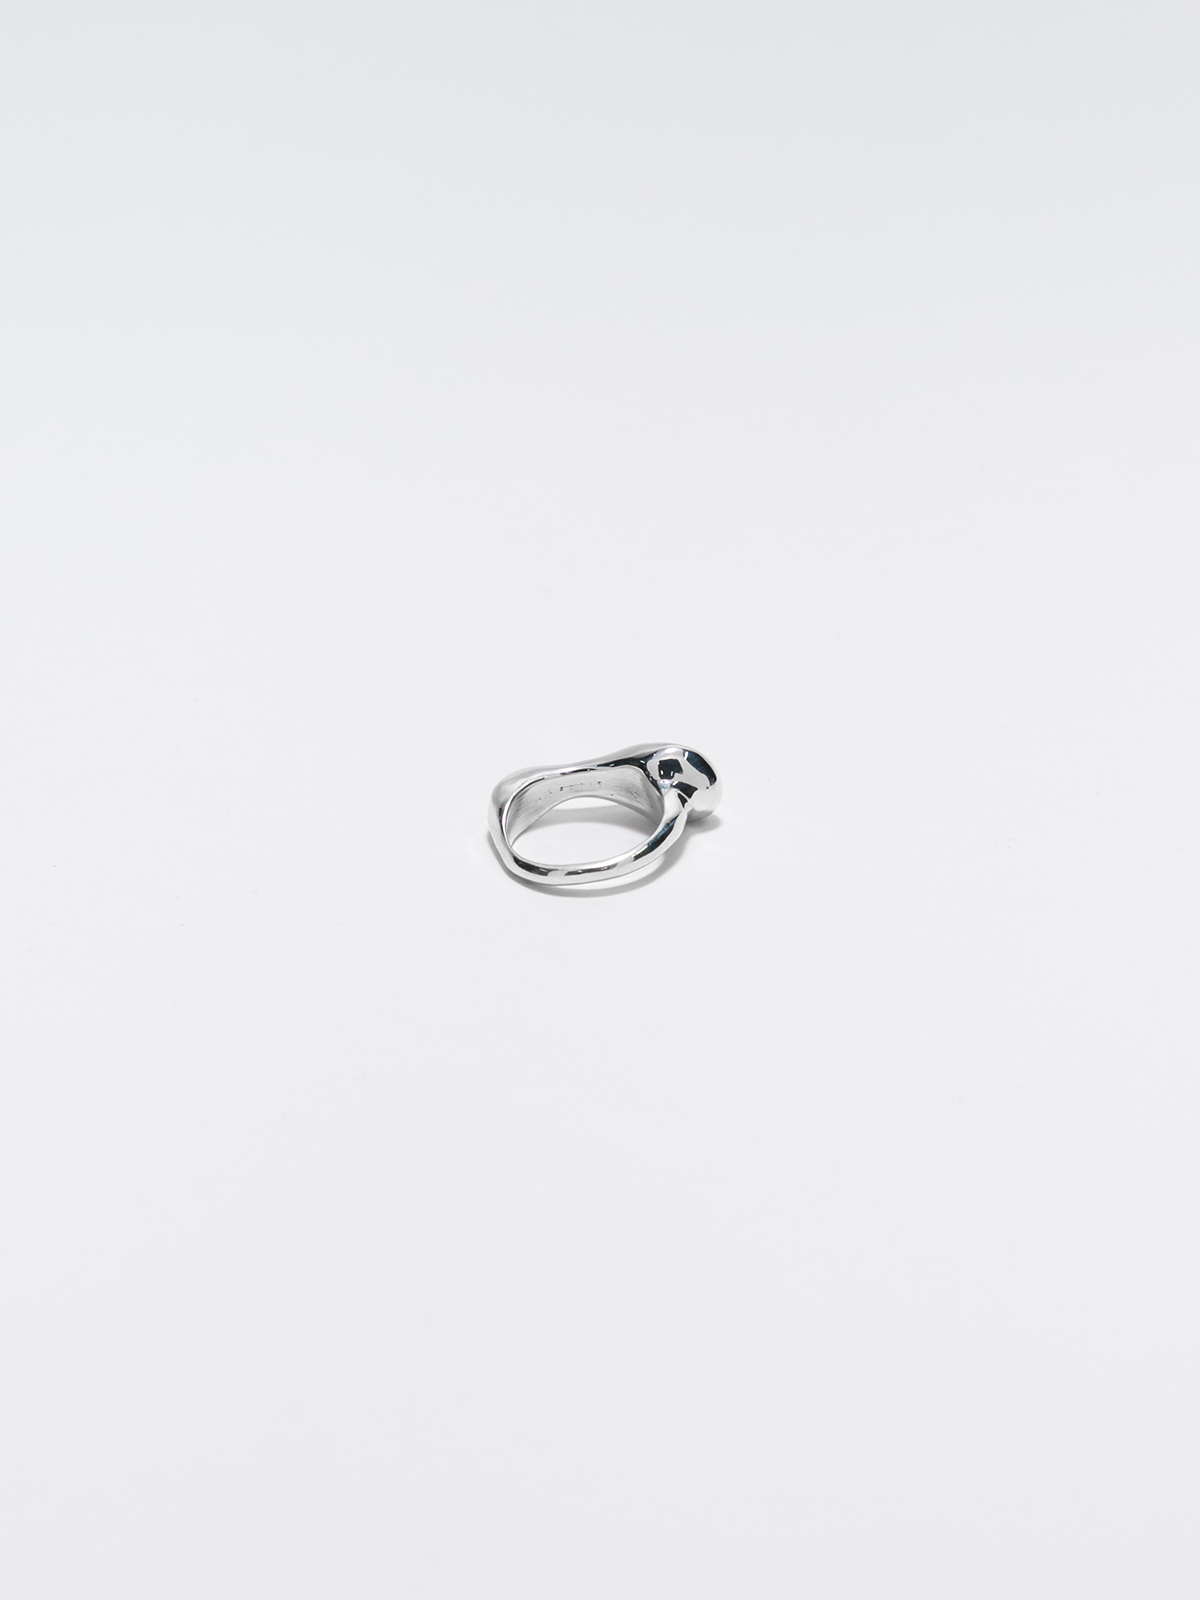 REST_Ring_Silver_1200X1600_3